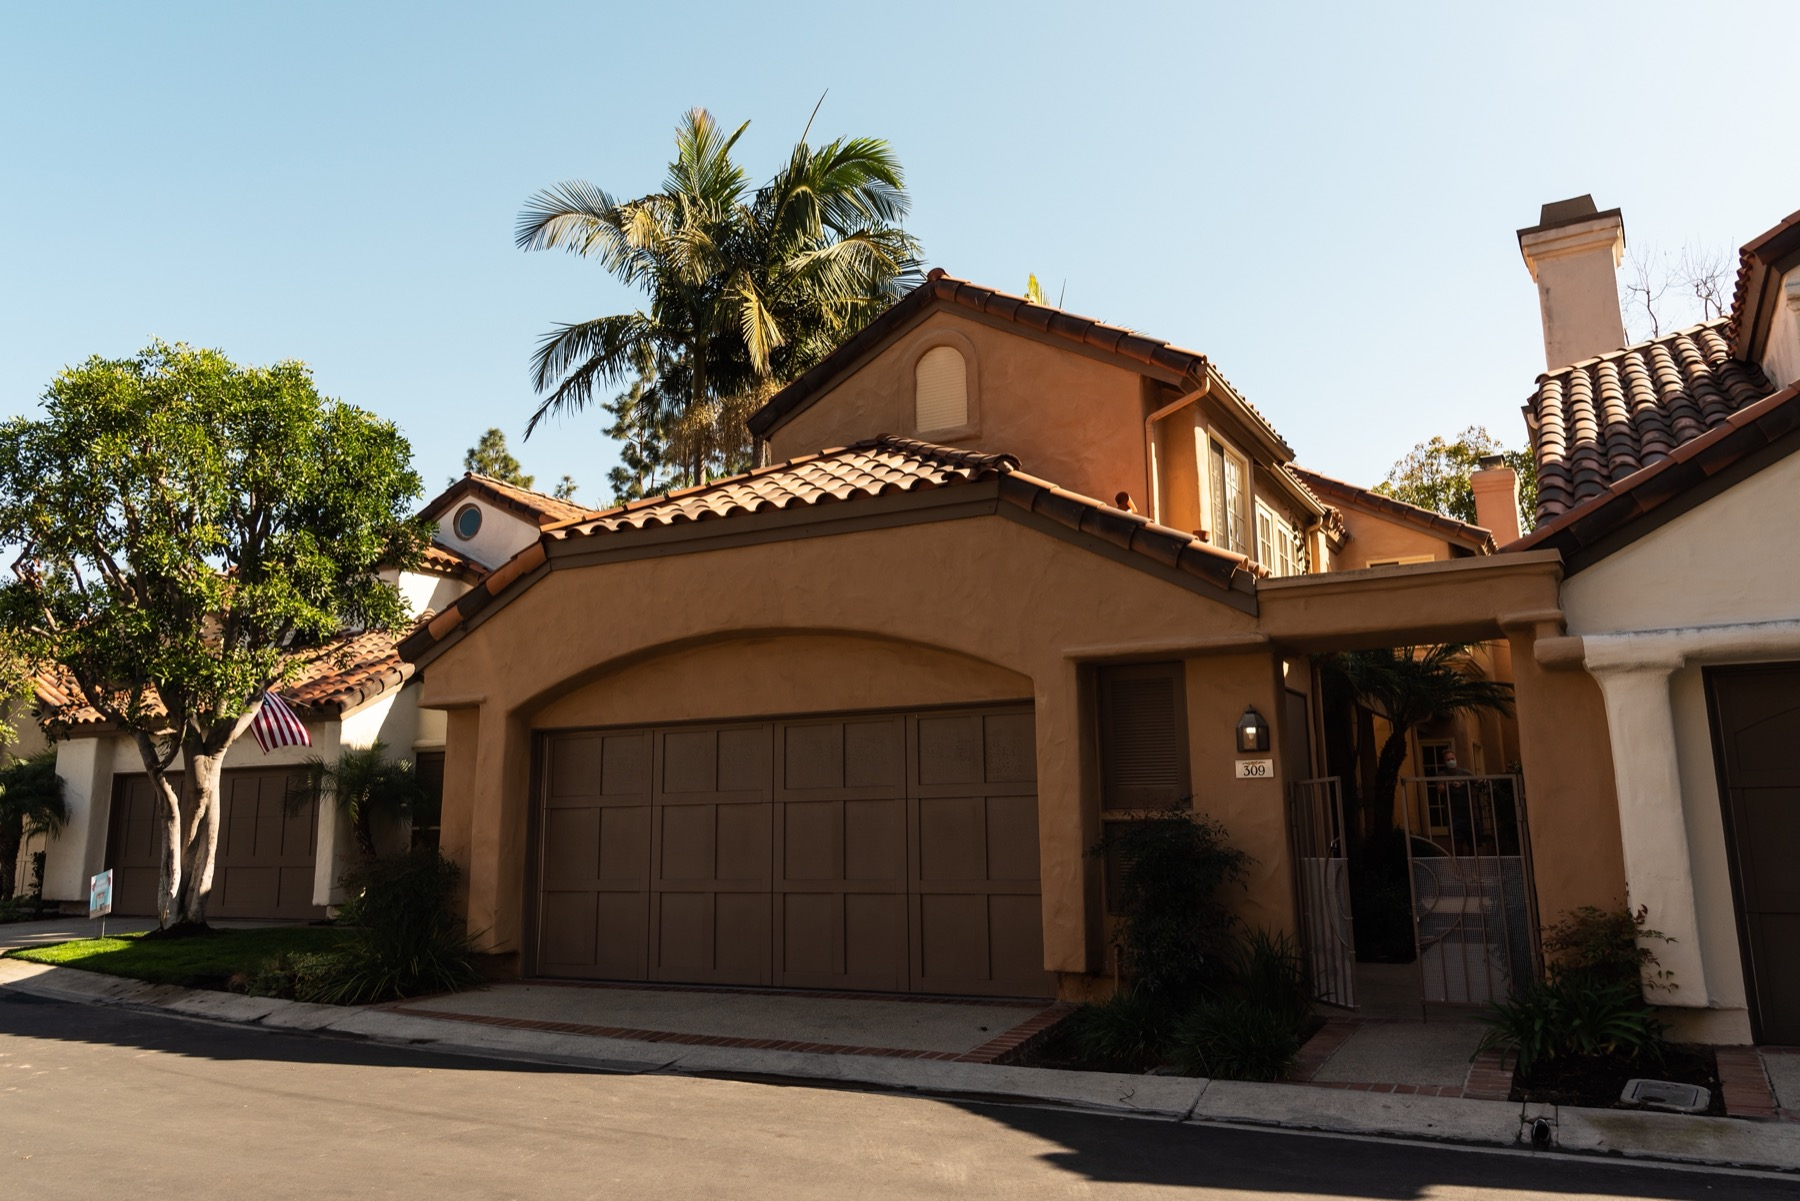 309 La Jolla St, Long Beach, CA 90803